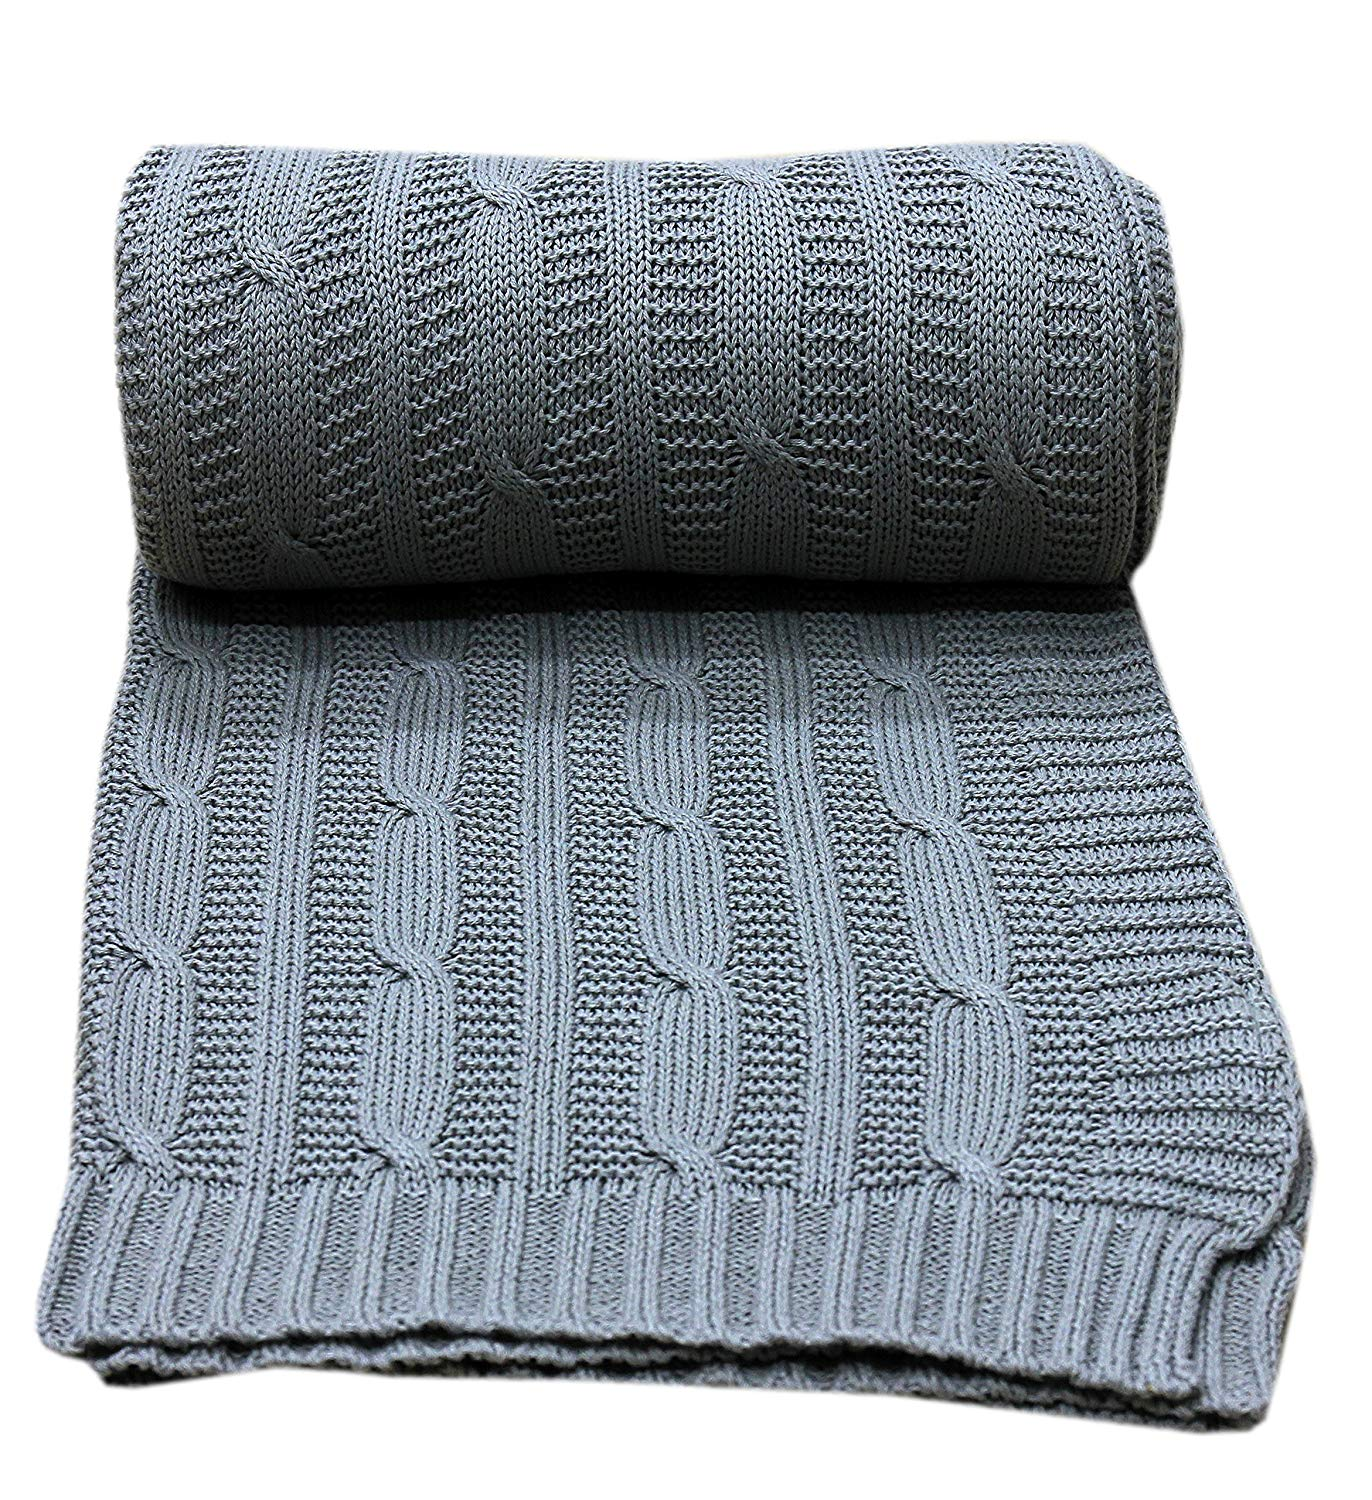 Sofa Throws Knitted Cheap Knitted Bed Throws Find Knitted Bed Throws Deals On Line At